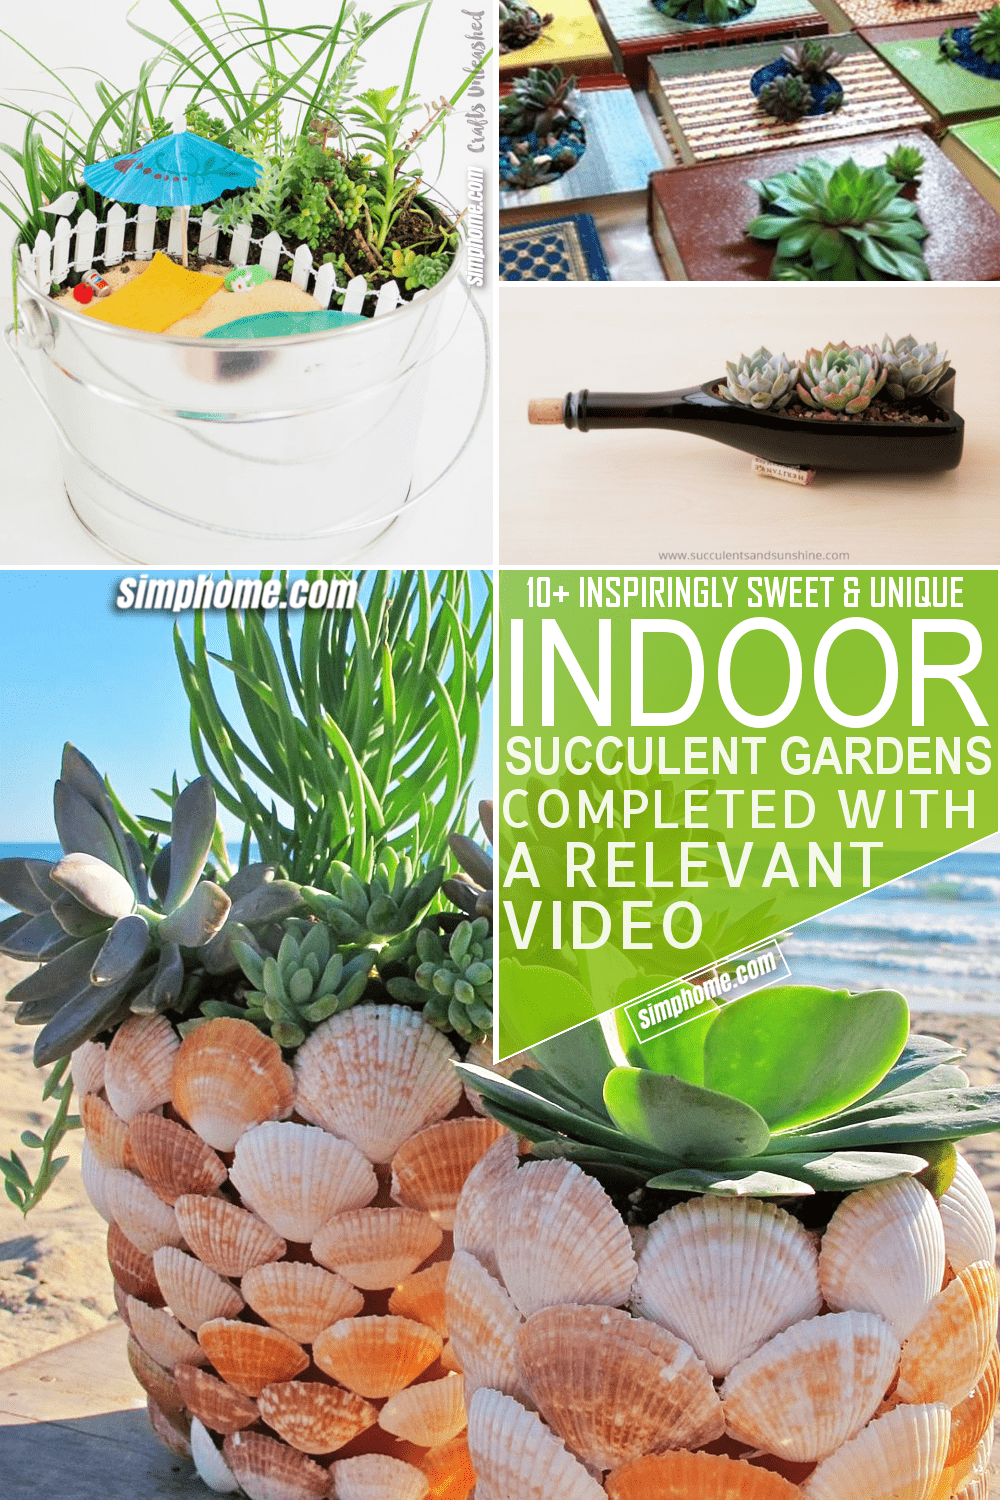 10 Indoor Succulent Garden Ideas via Simphome.com Featured Pinterest